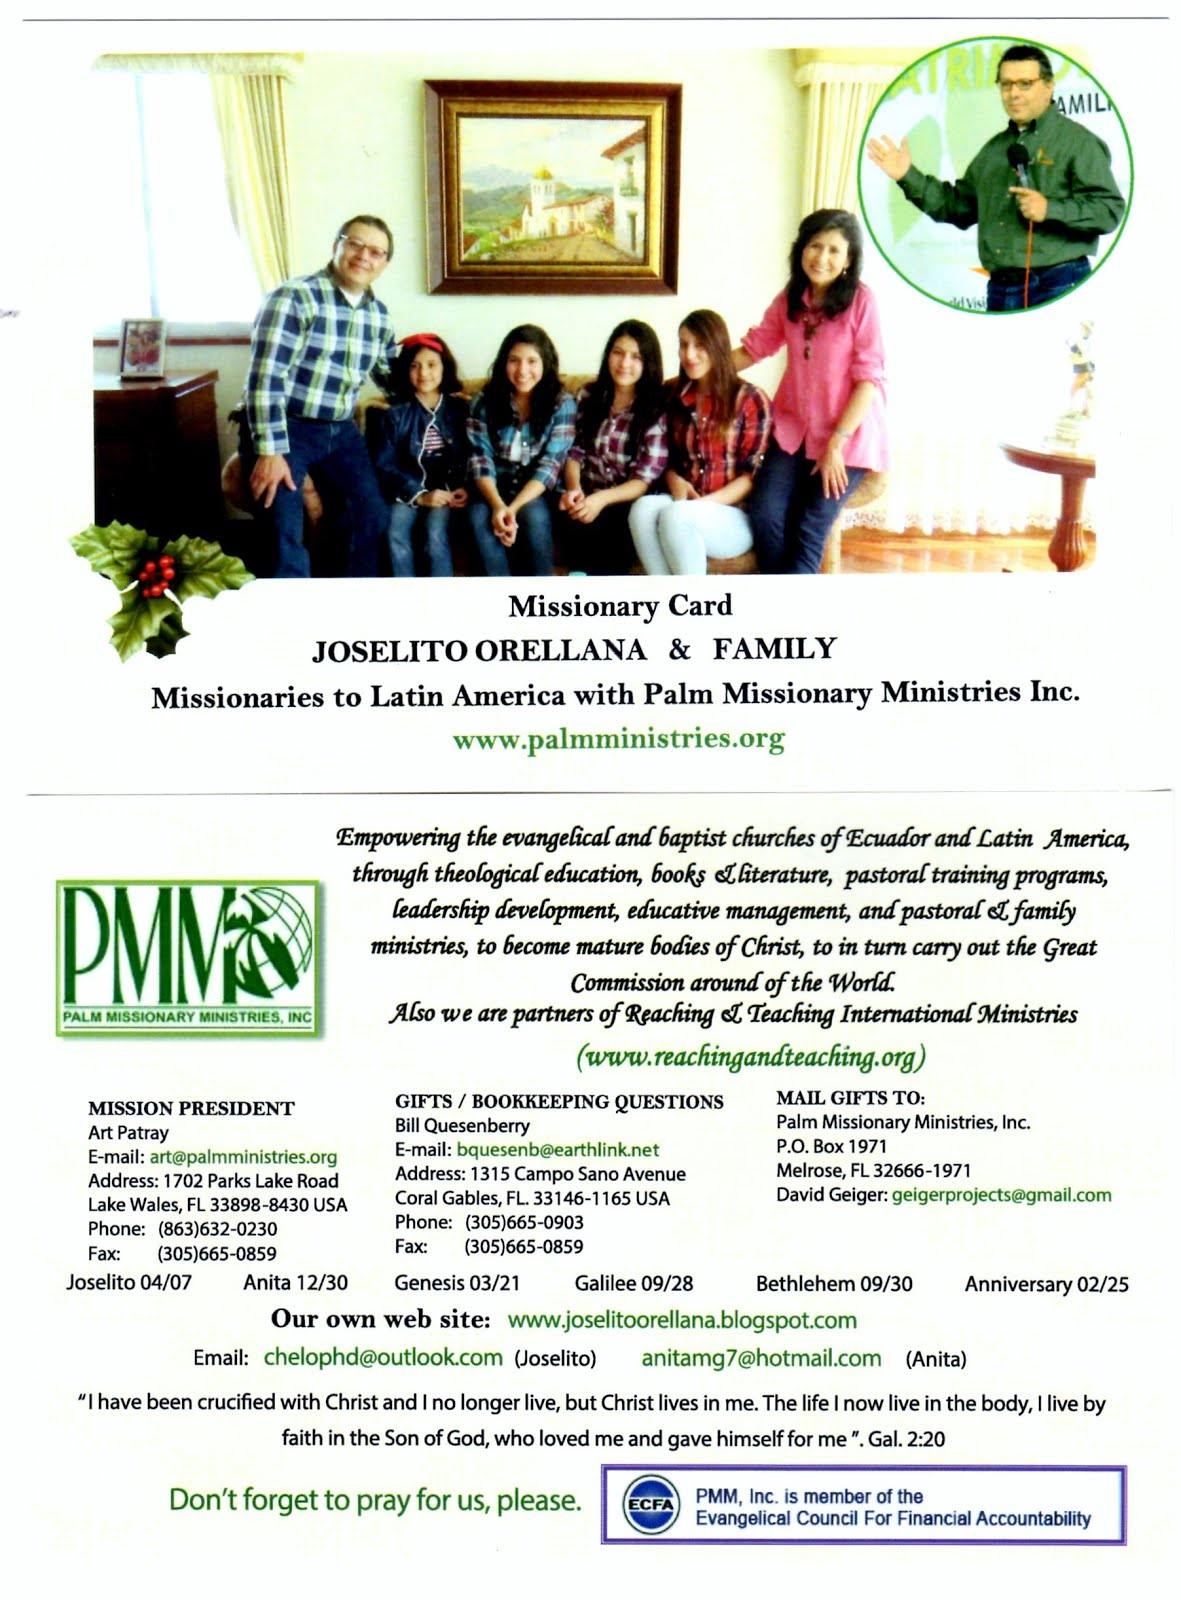 Our Missionary Card, PMM Inc., USA